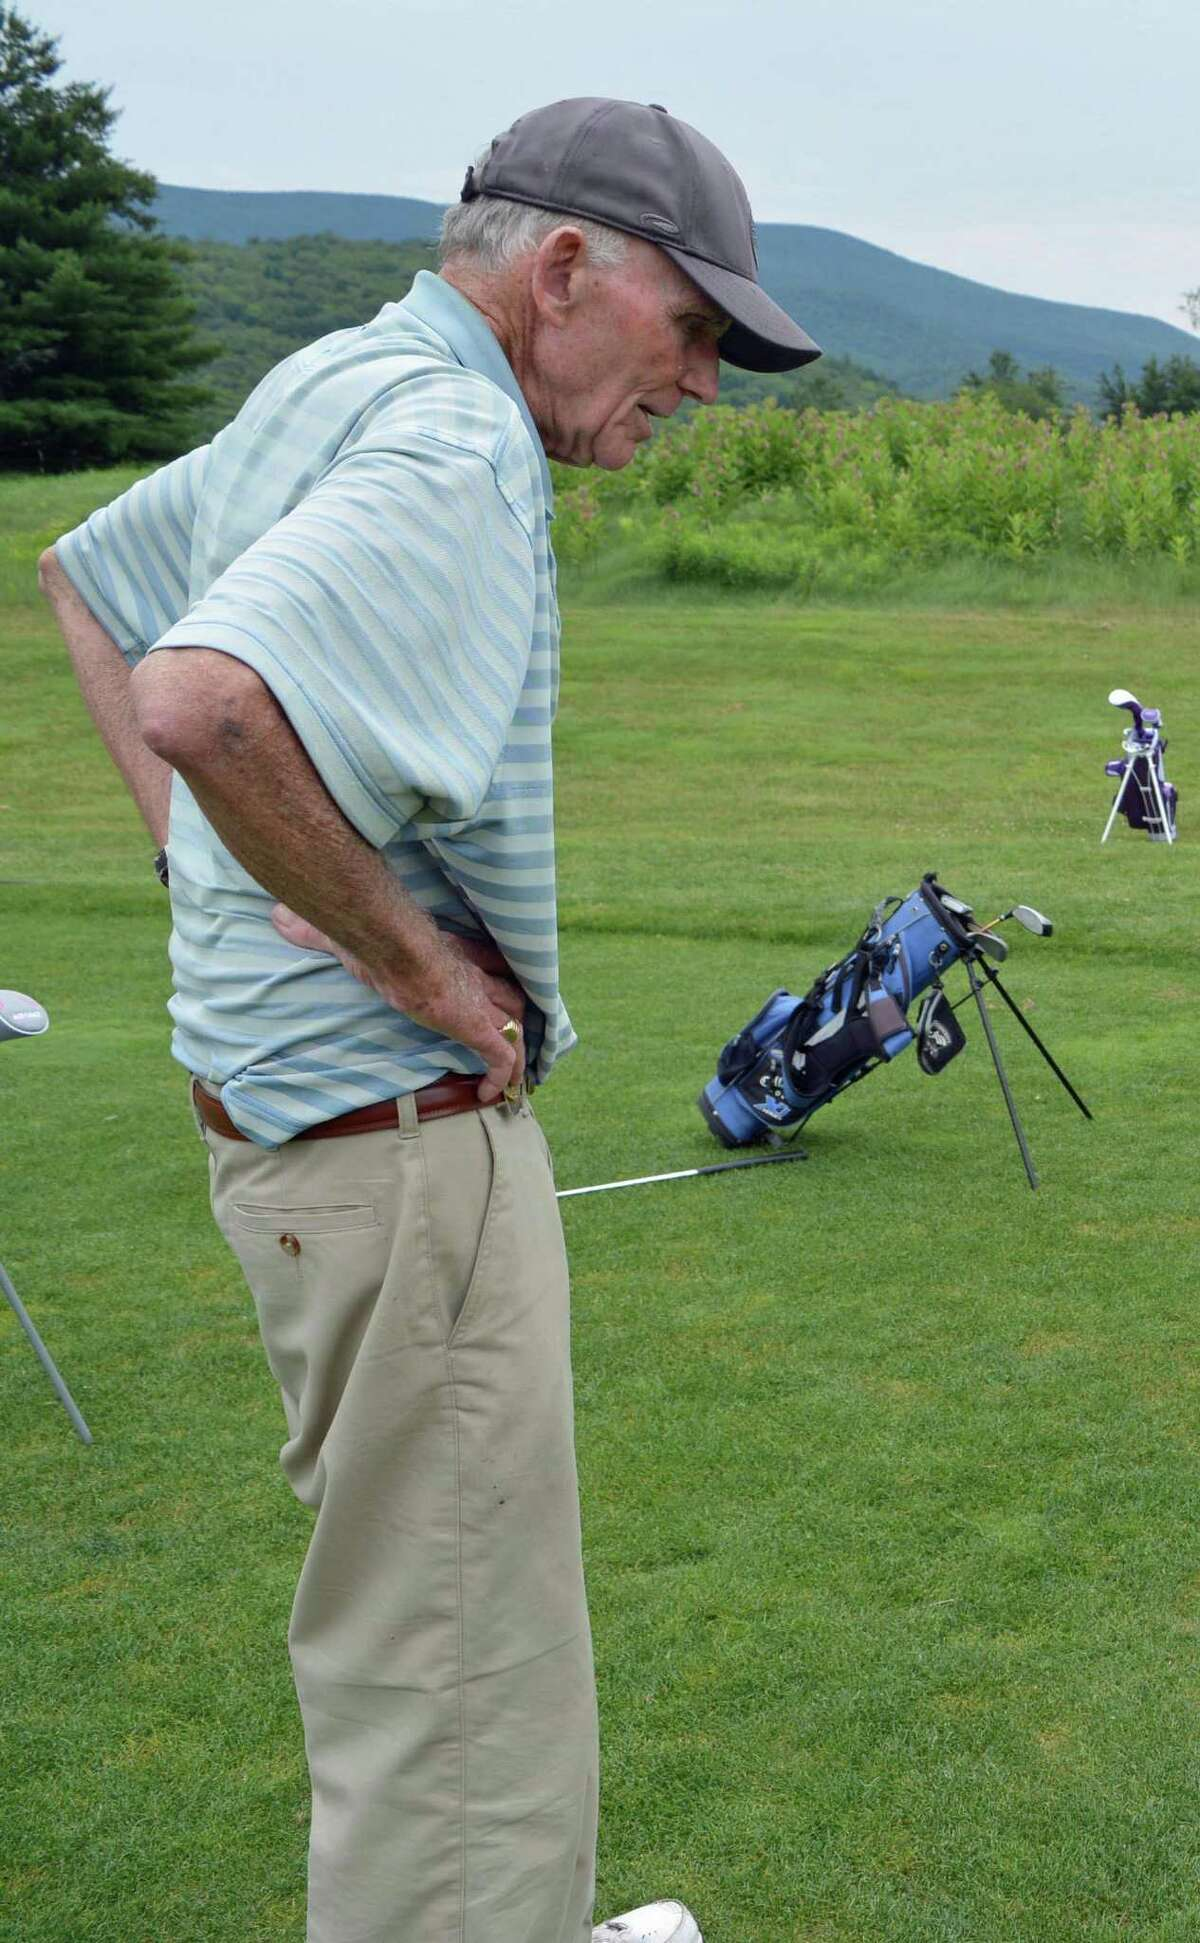 Peter French watches a student swing a golf club at a clinic for kids he taught at Waubeeka Golf Links in Williamstown, Mass. on Sunday, June 23, 2017 in this photograph provided by The Berkshire Eagle.